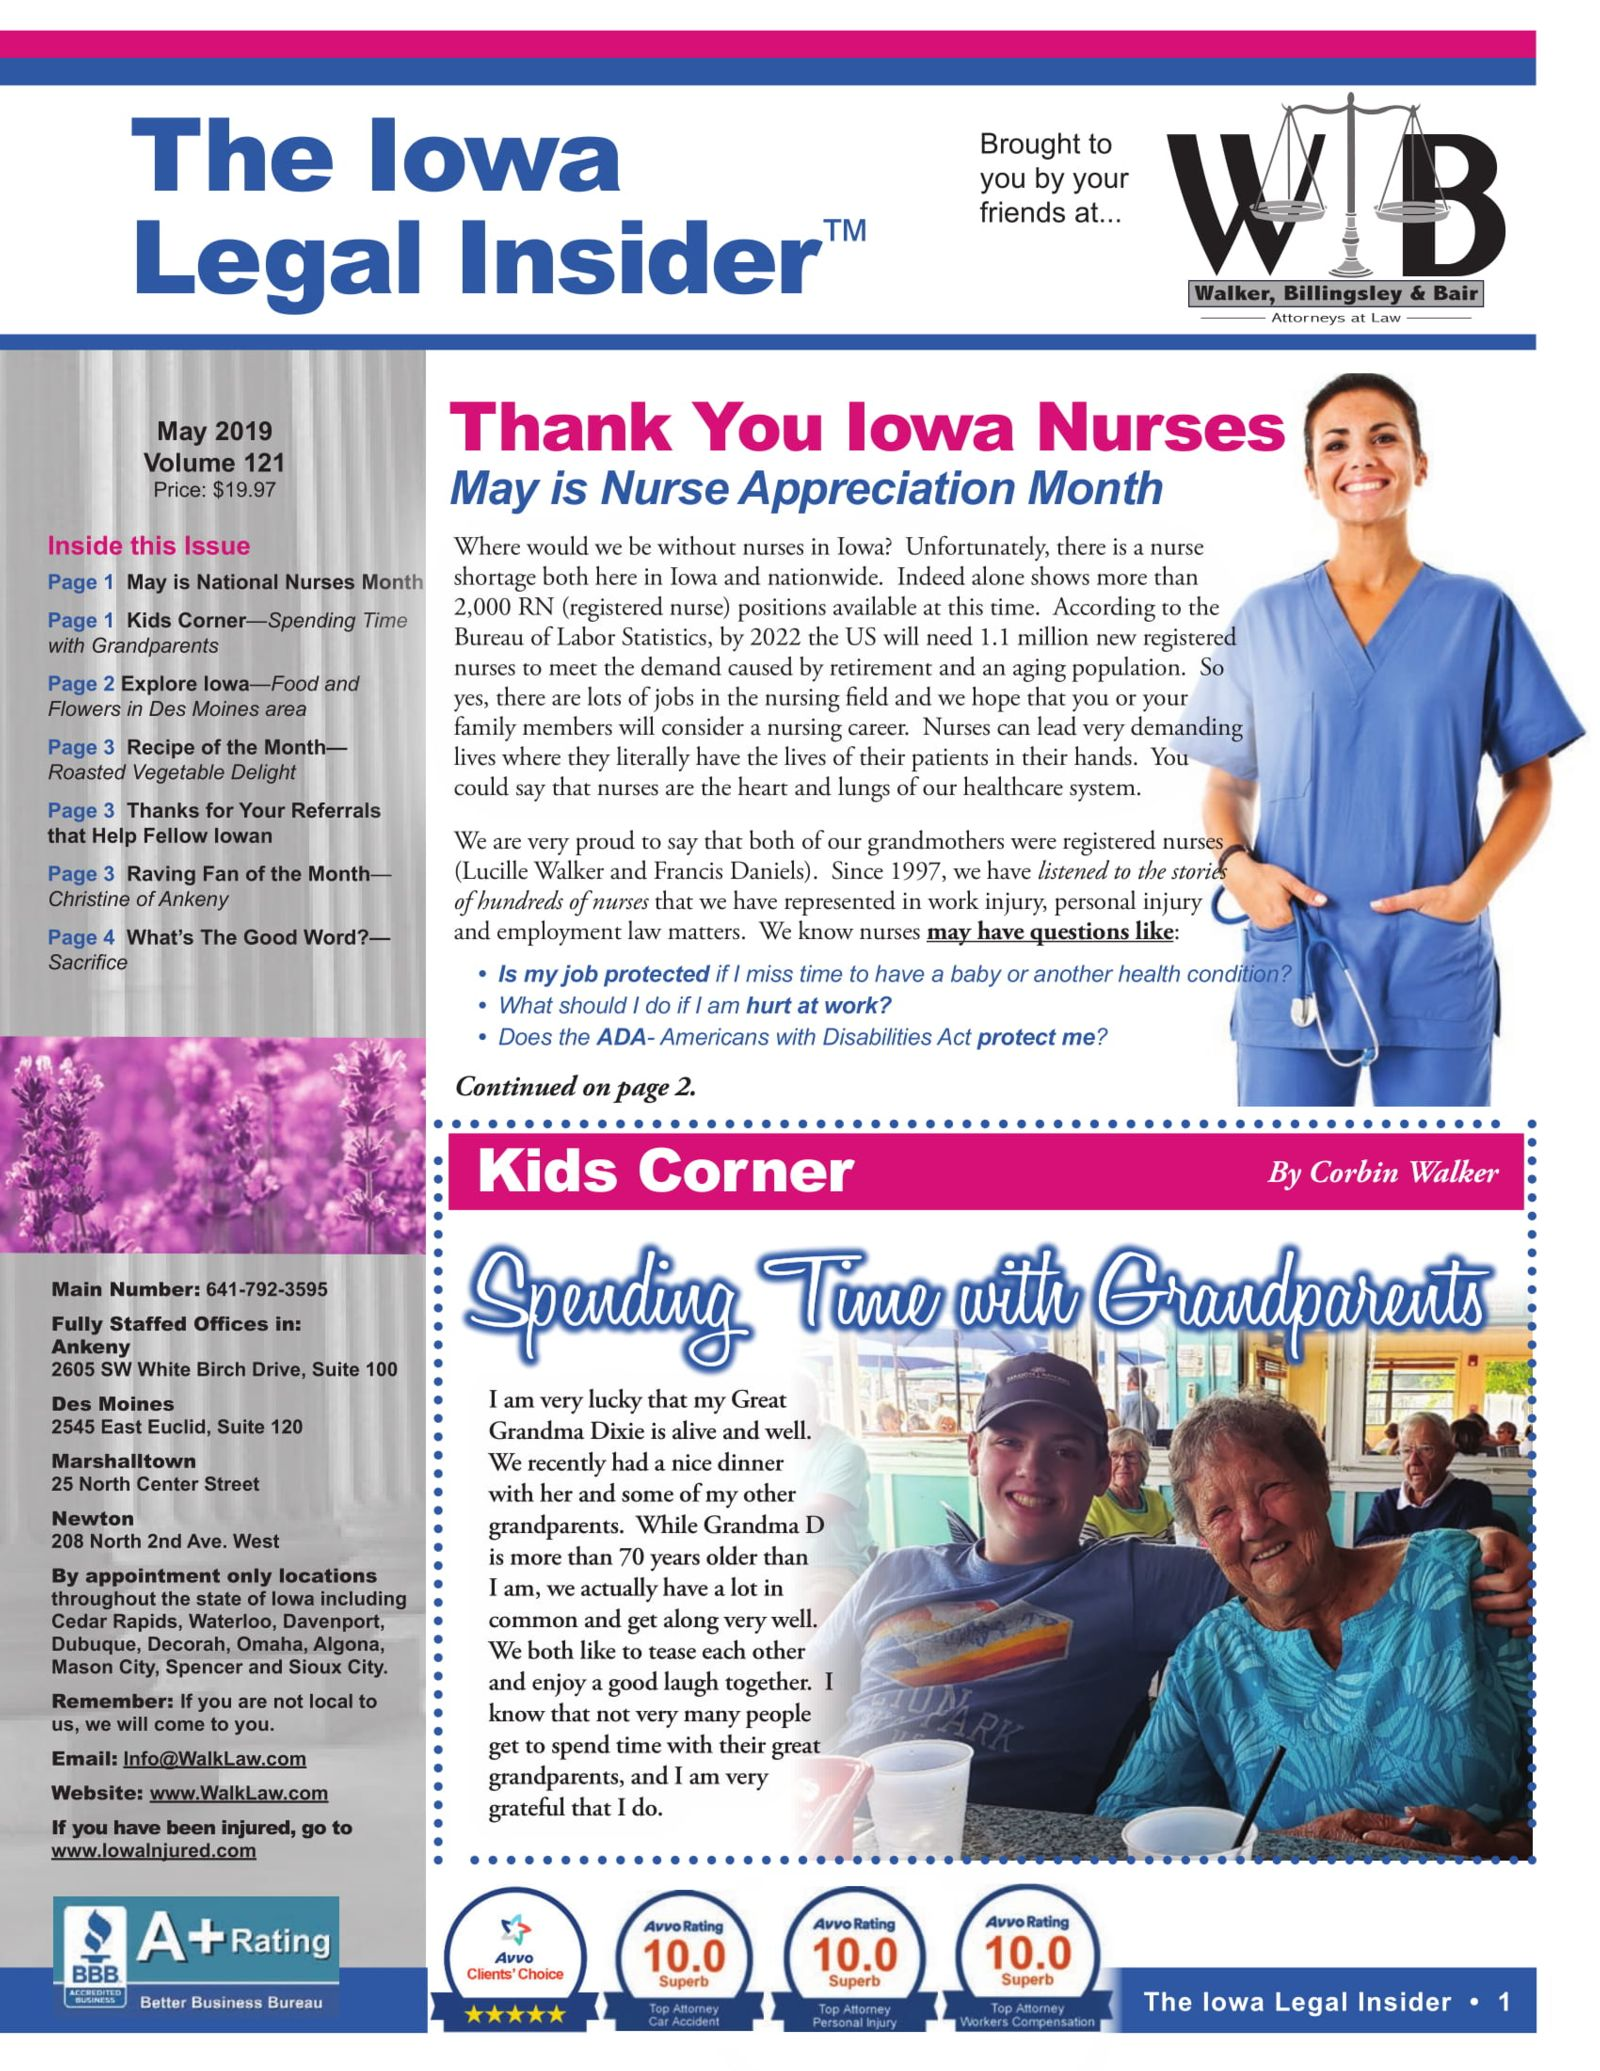 The Iowa Legal Insider Nurse Appreciation Month